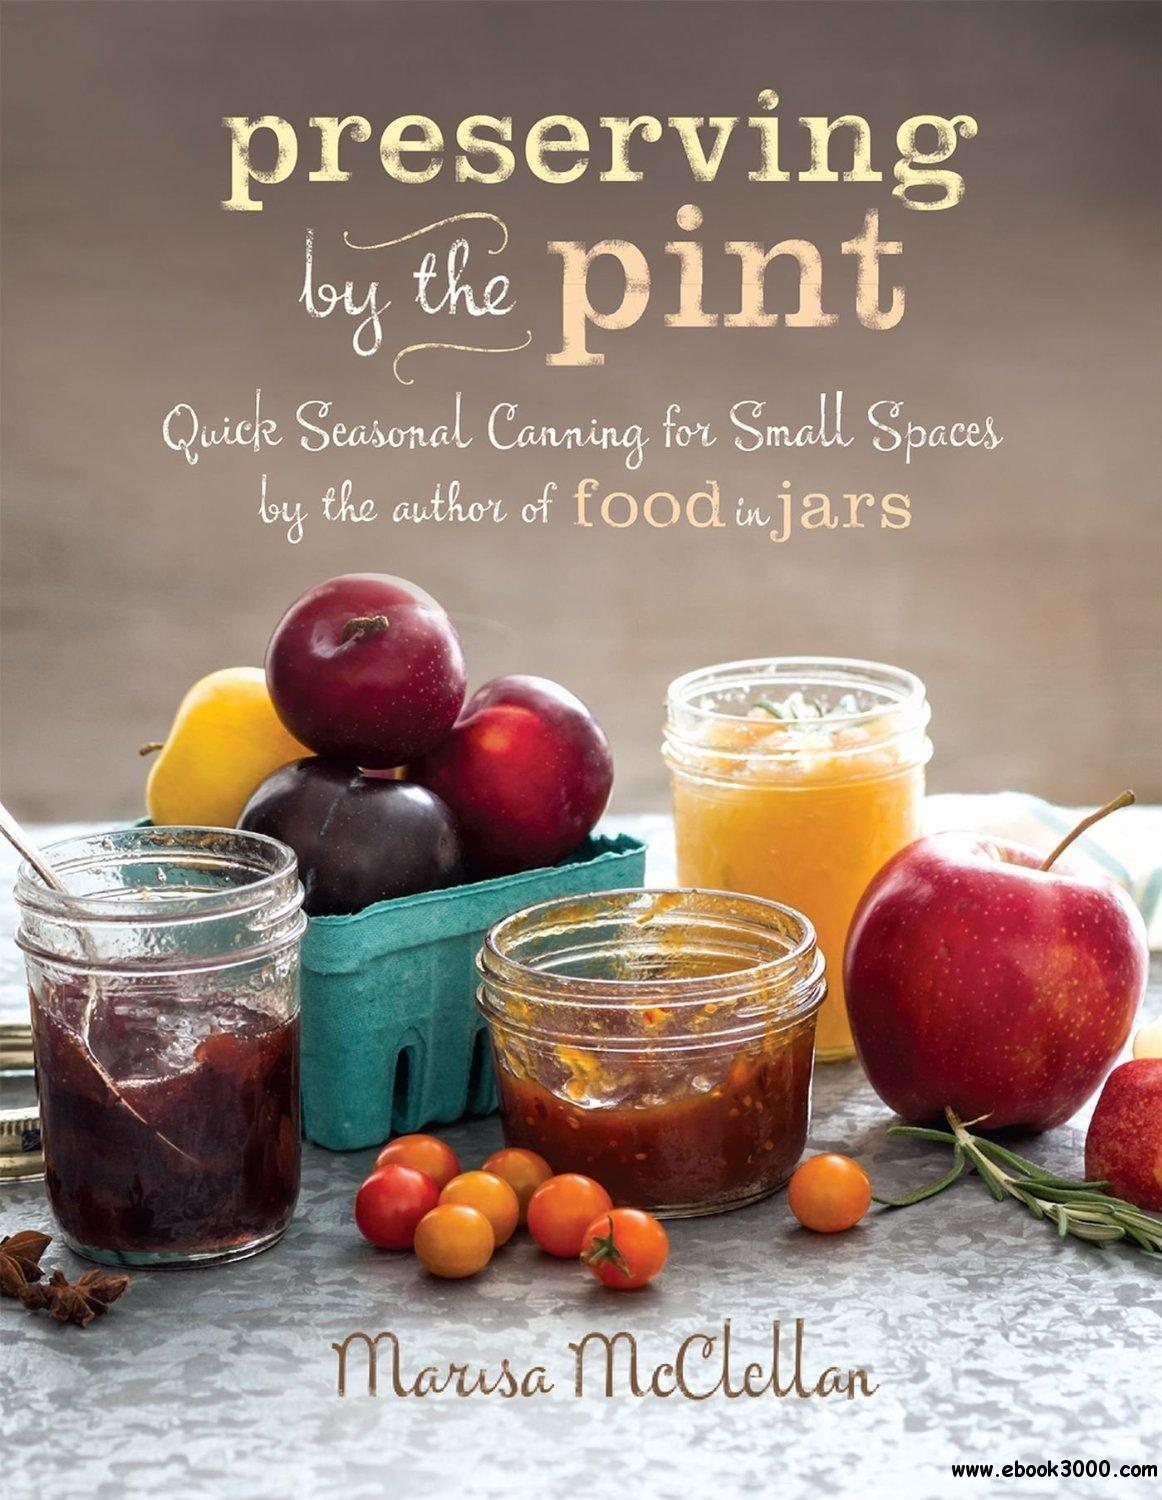 Preserving by the Pint: Quick Seasonal Canning for Small Spaces from the author of Food in Jars free download